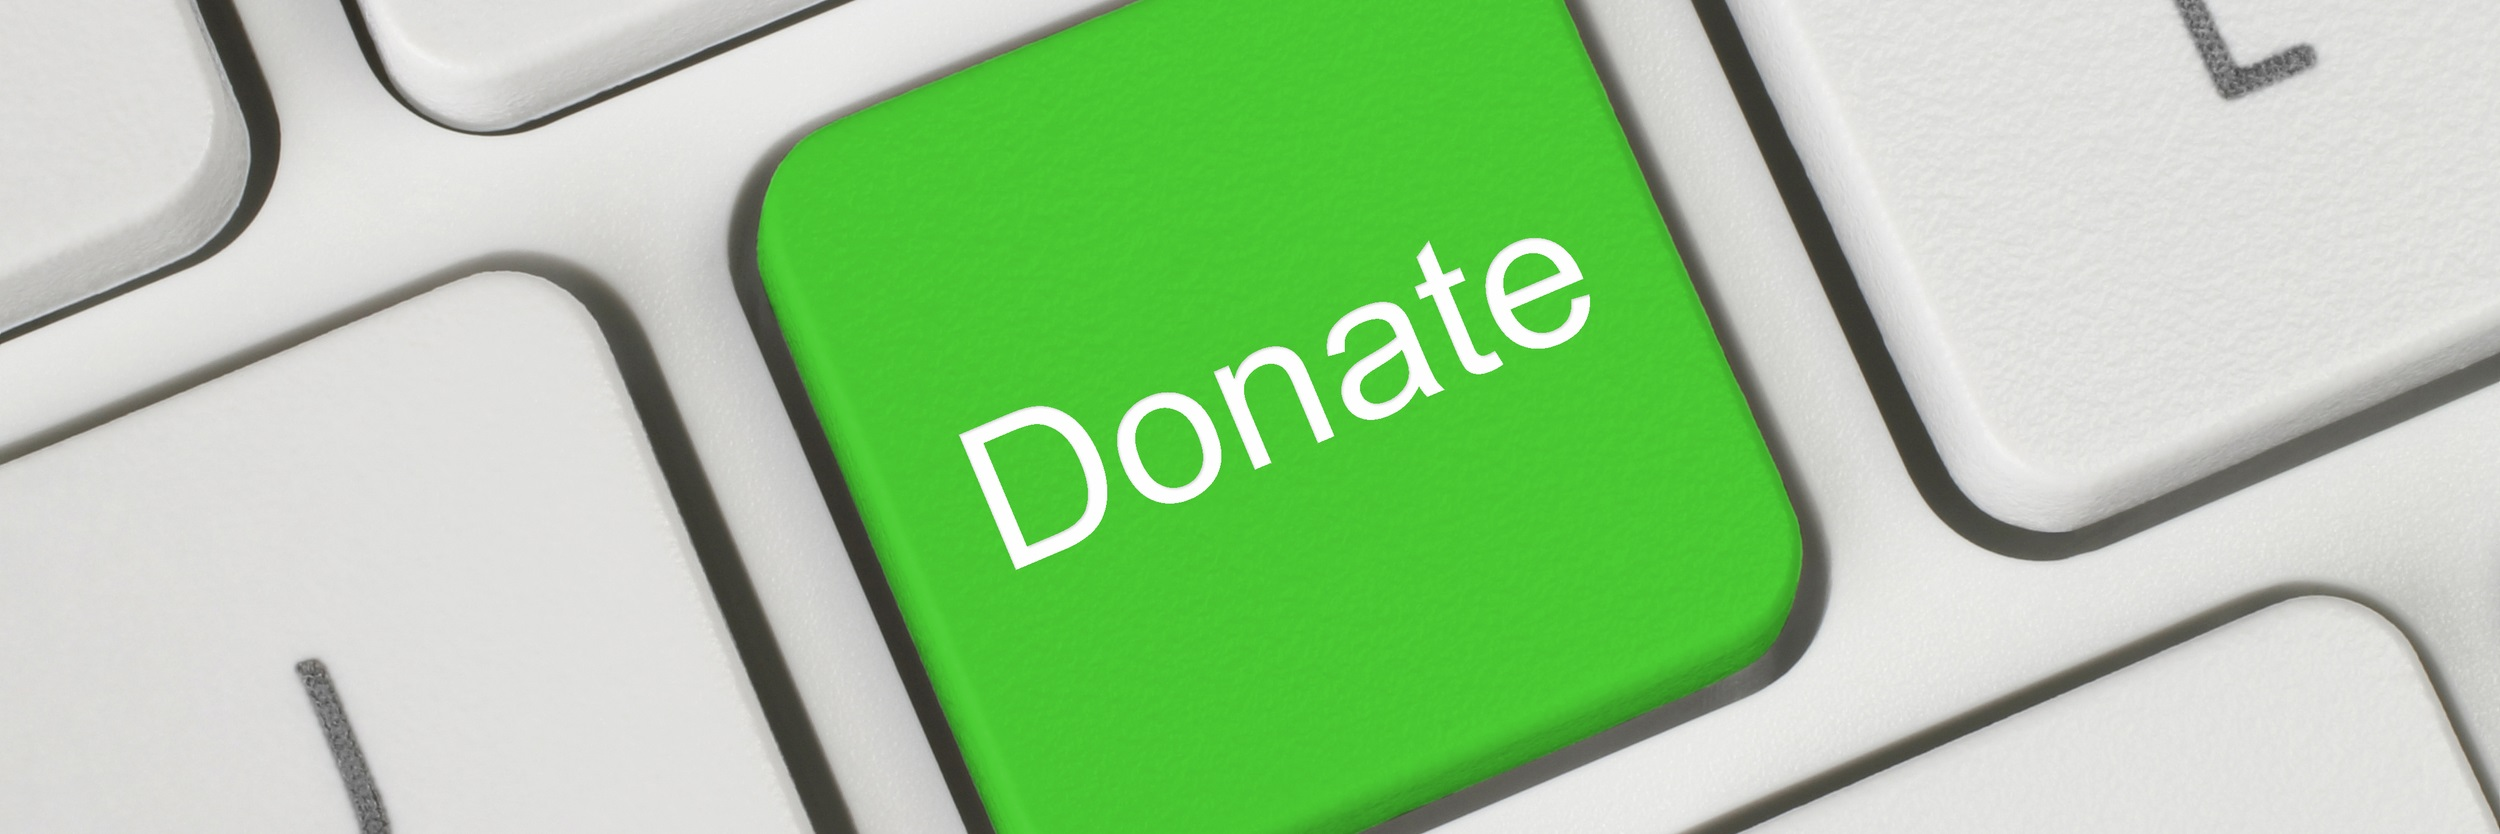 Donate before it is late!